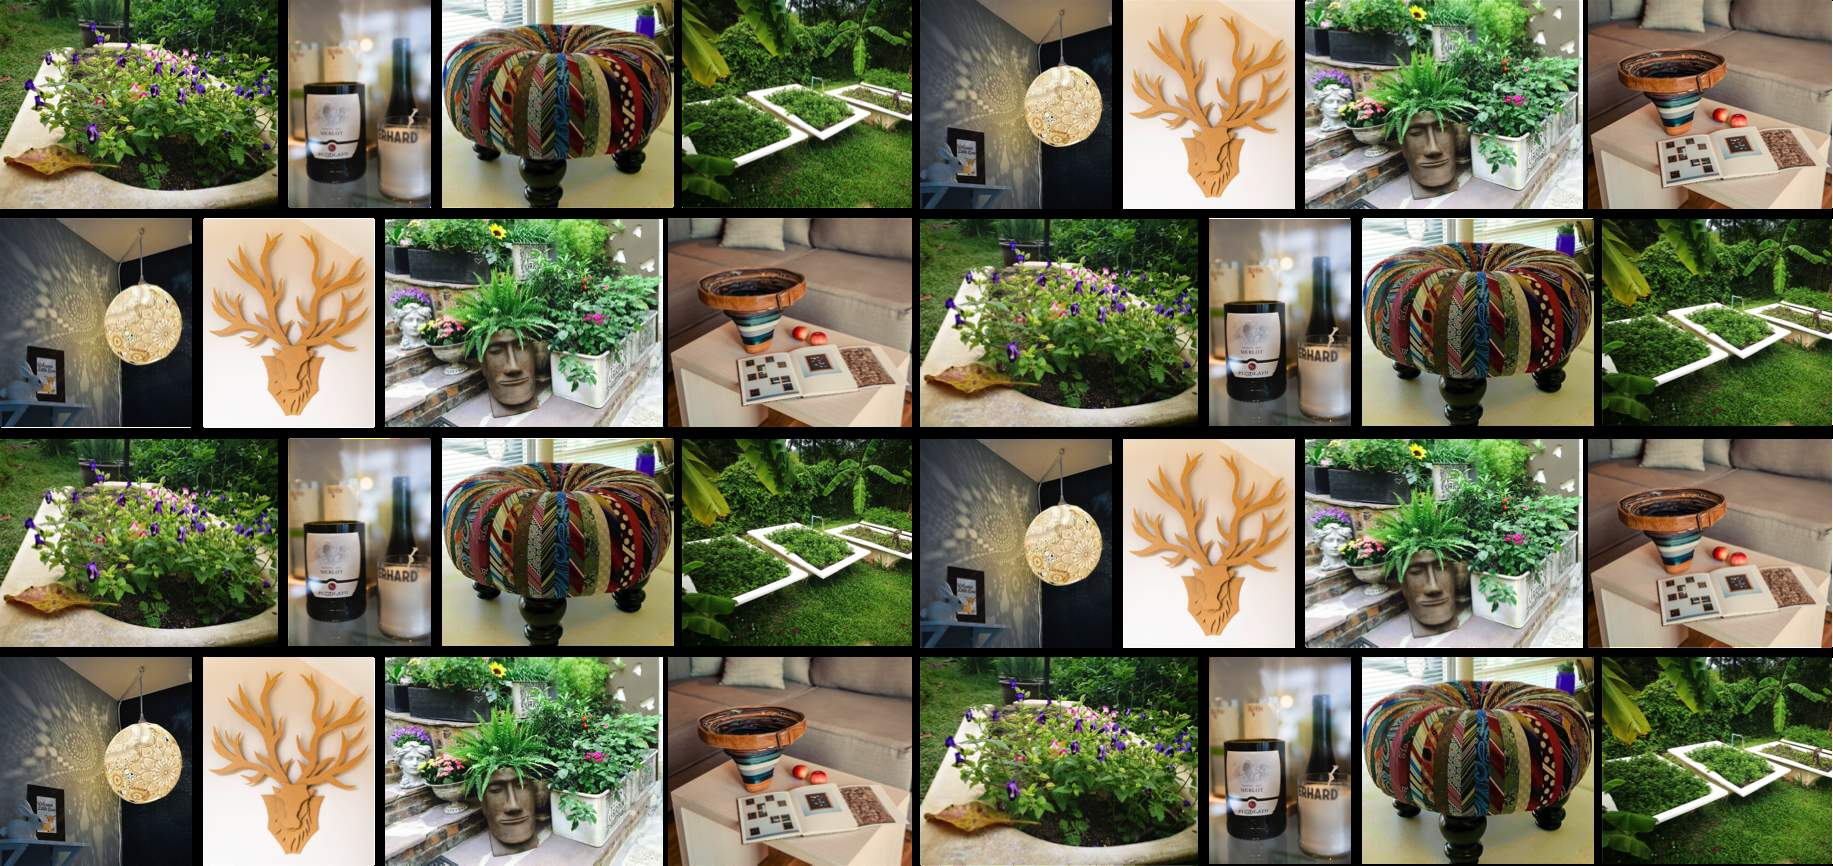 Upcycling inspiration hotel eco green